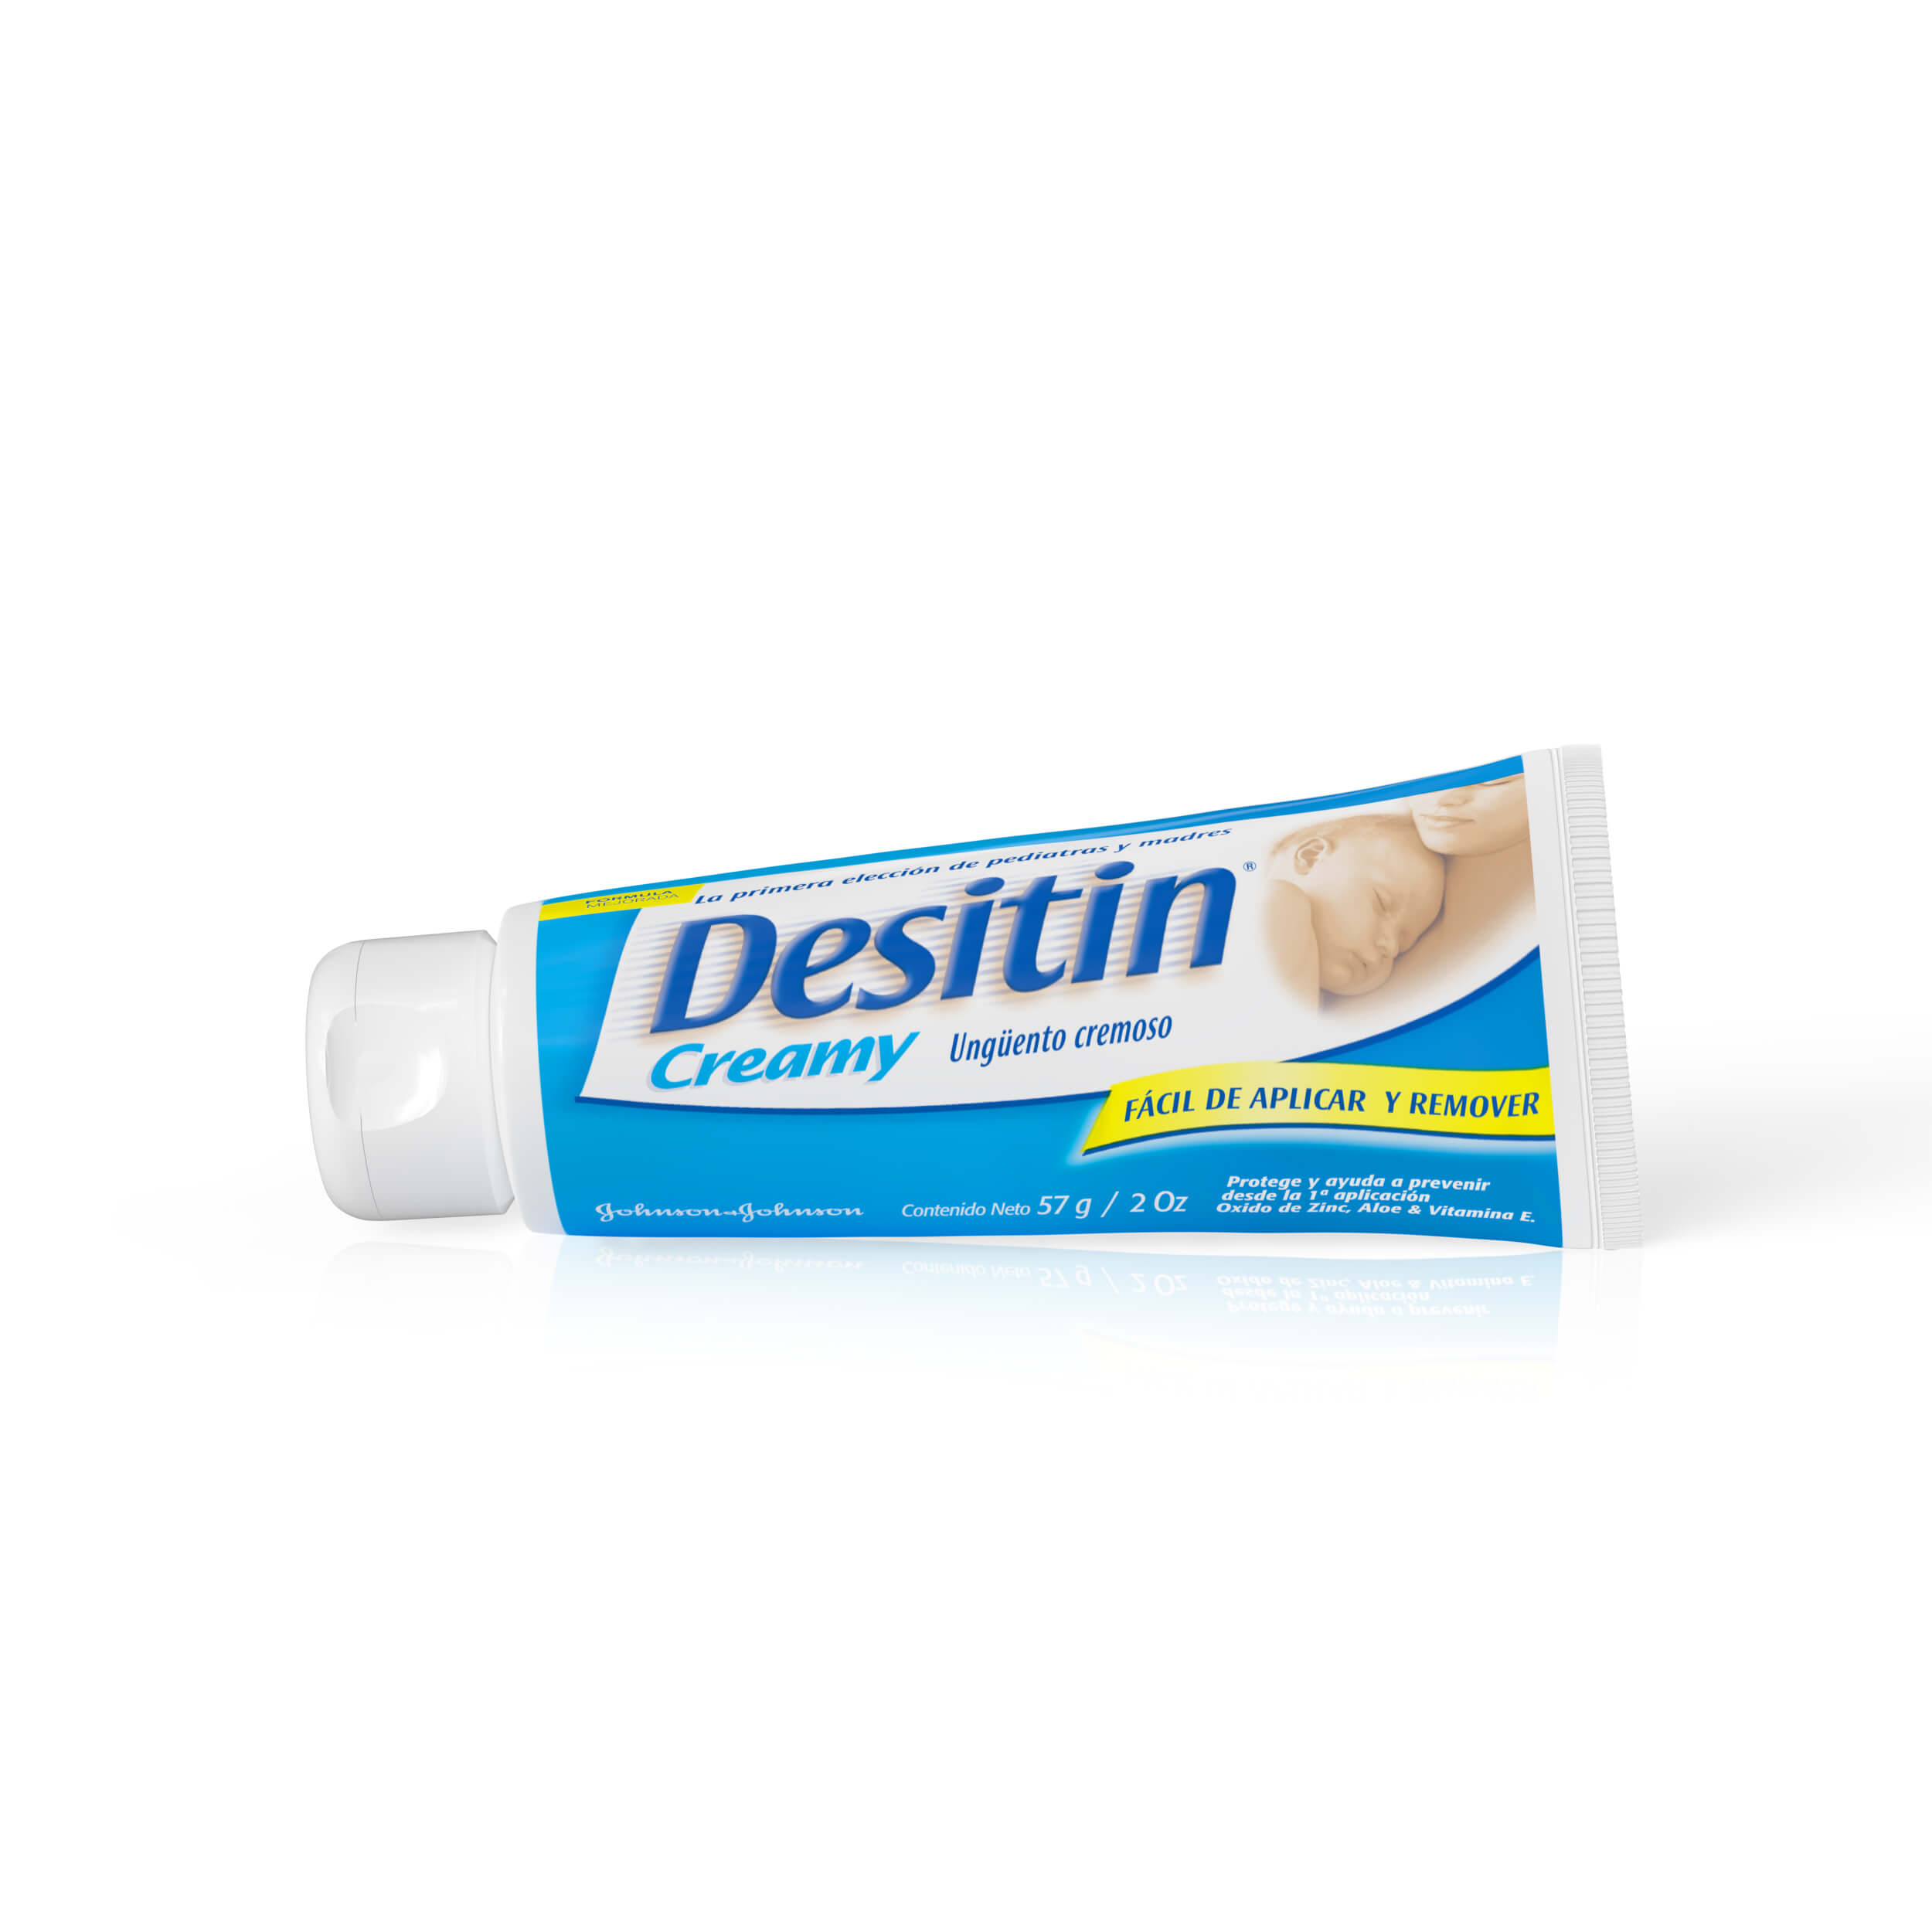 Desitin producto front